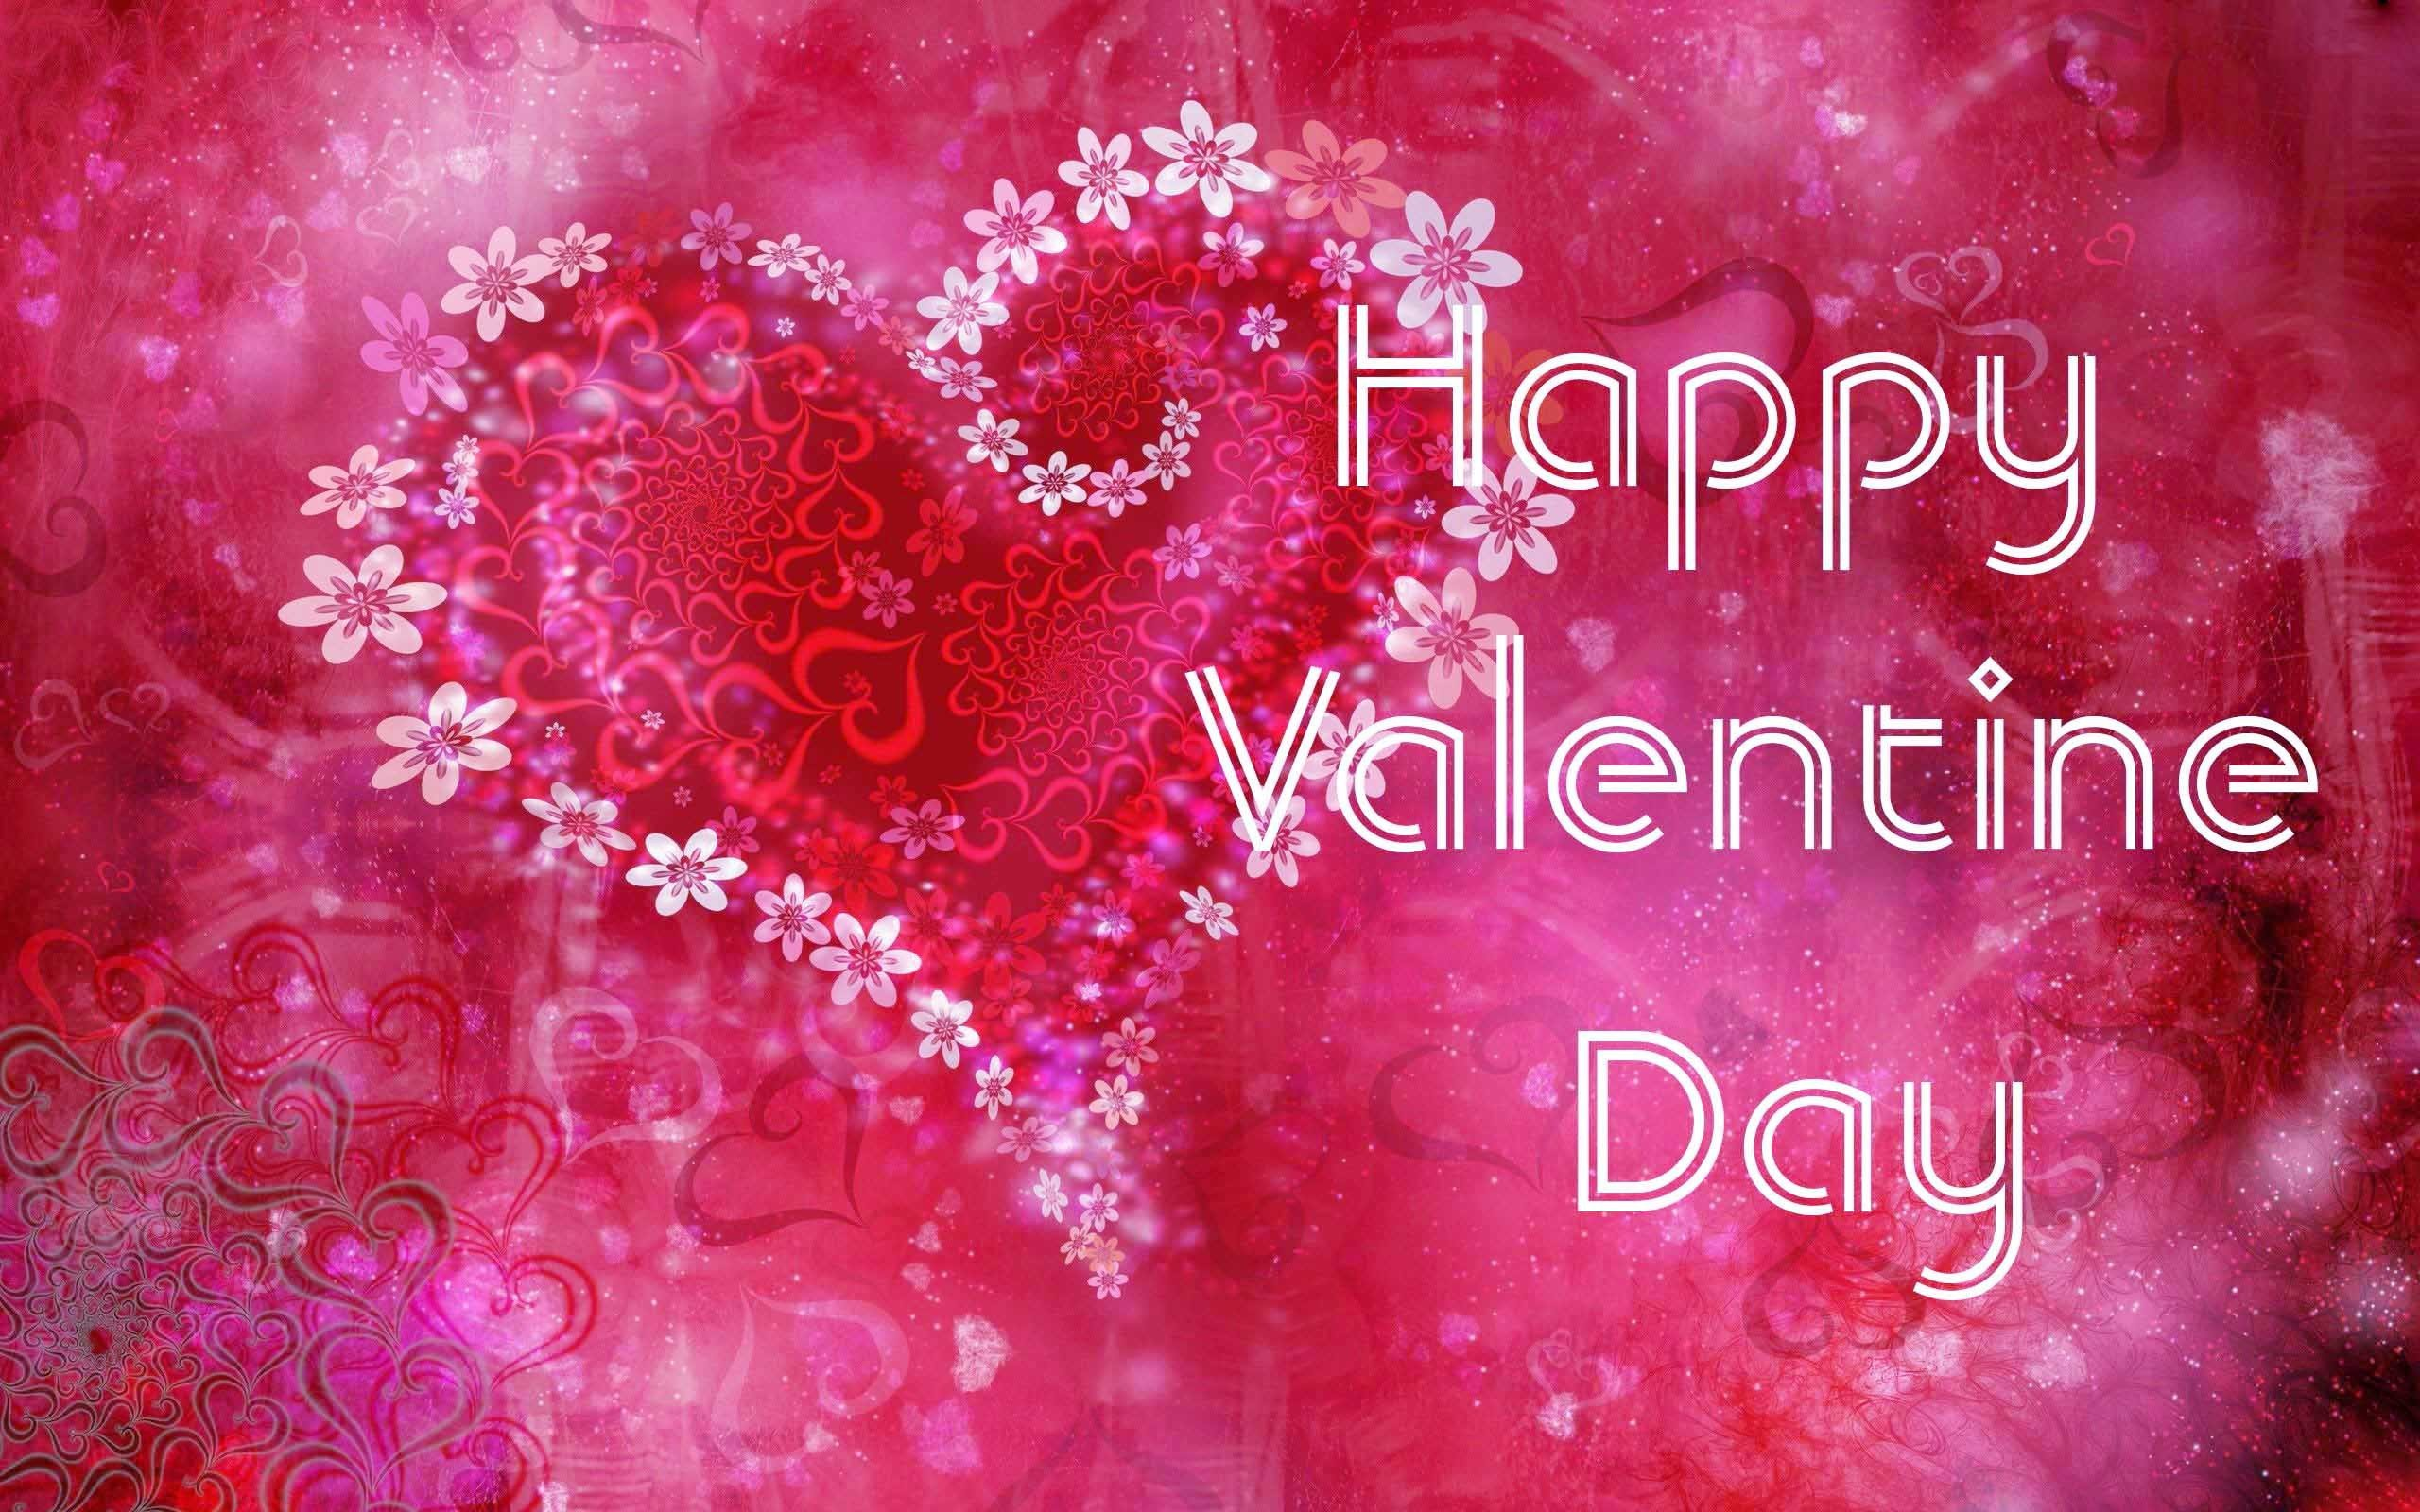 Happy Valentines Day Wallpaper Valentines Wallpapers Free